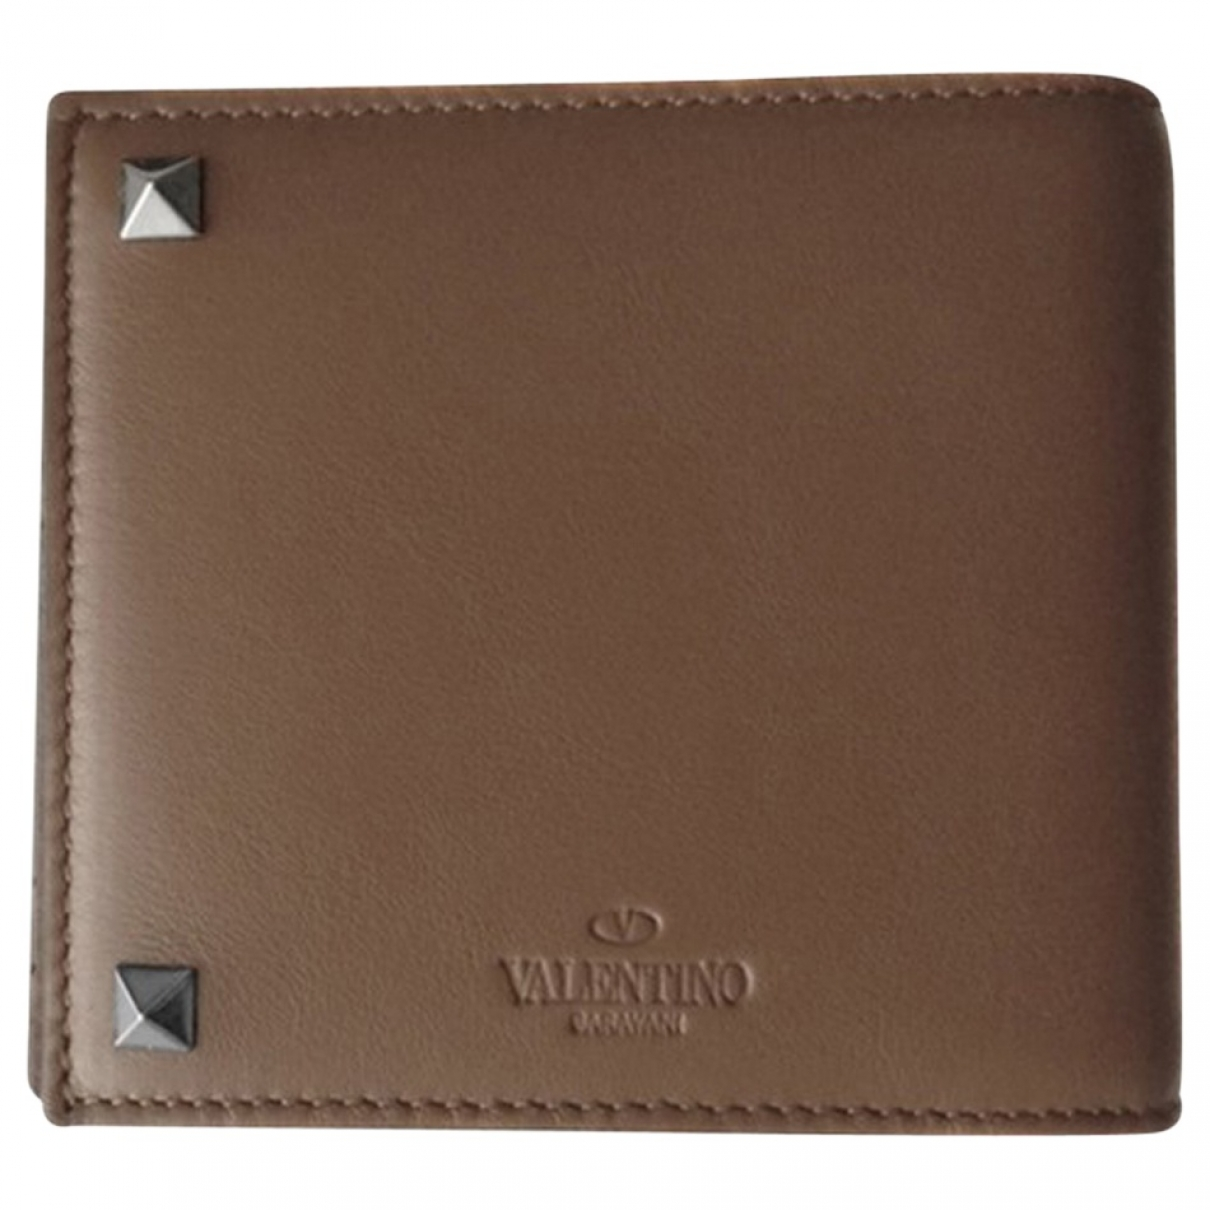 Valentino Garavani \N Brown Leather wallet for Women \N